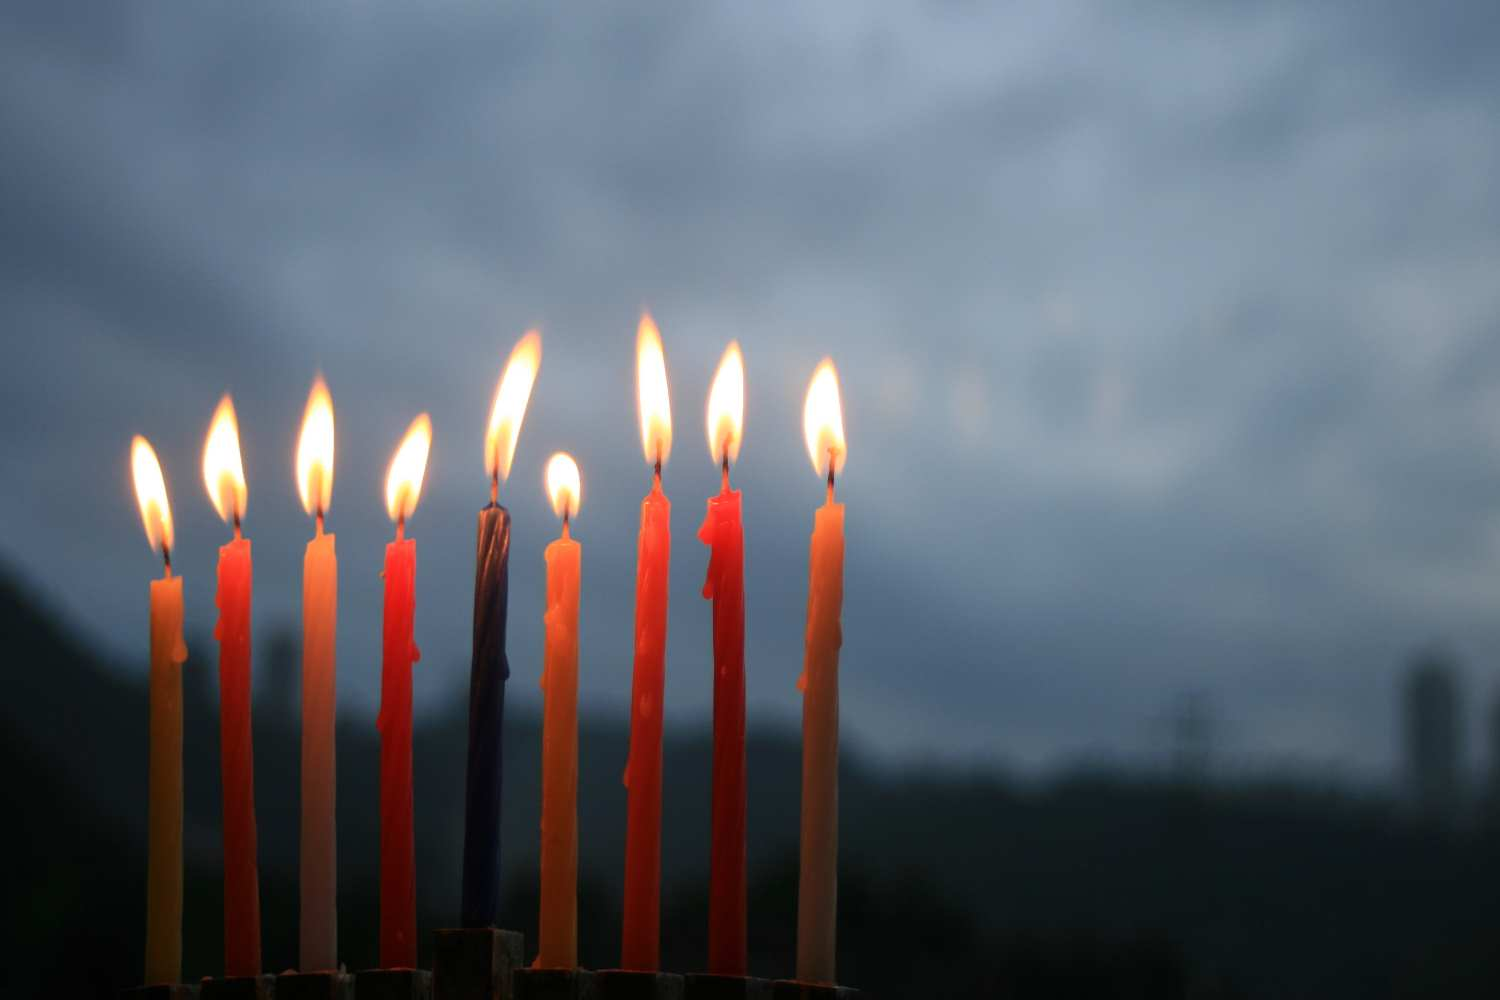 Hanukkah then and today